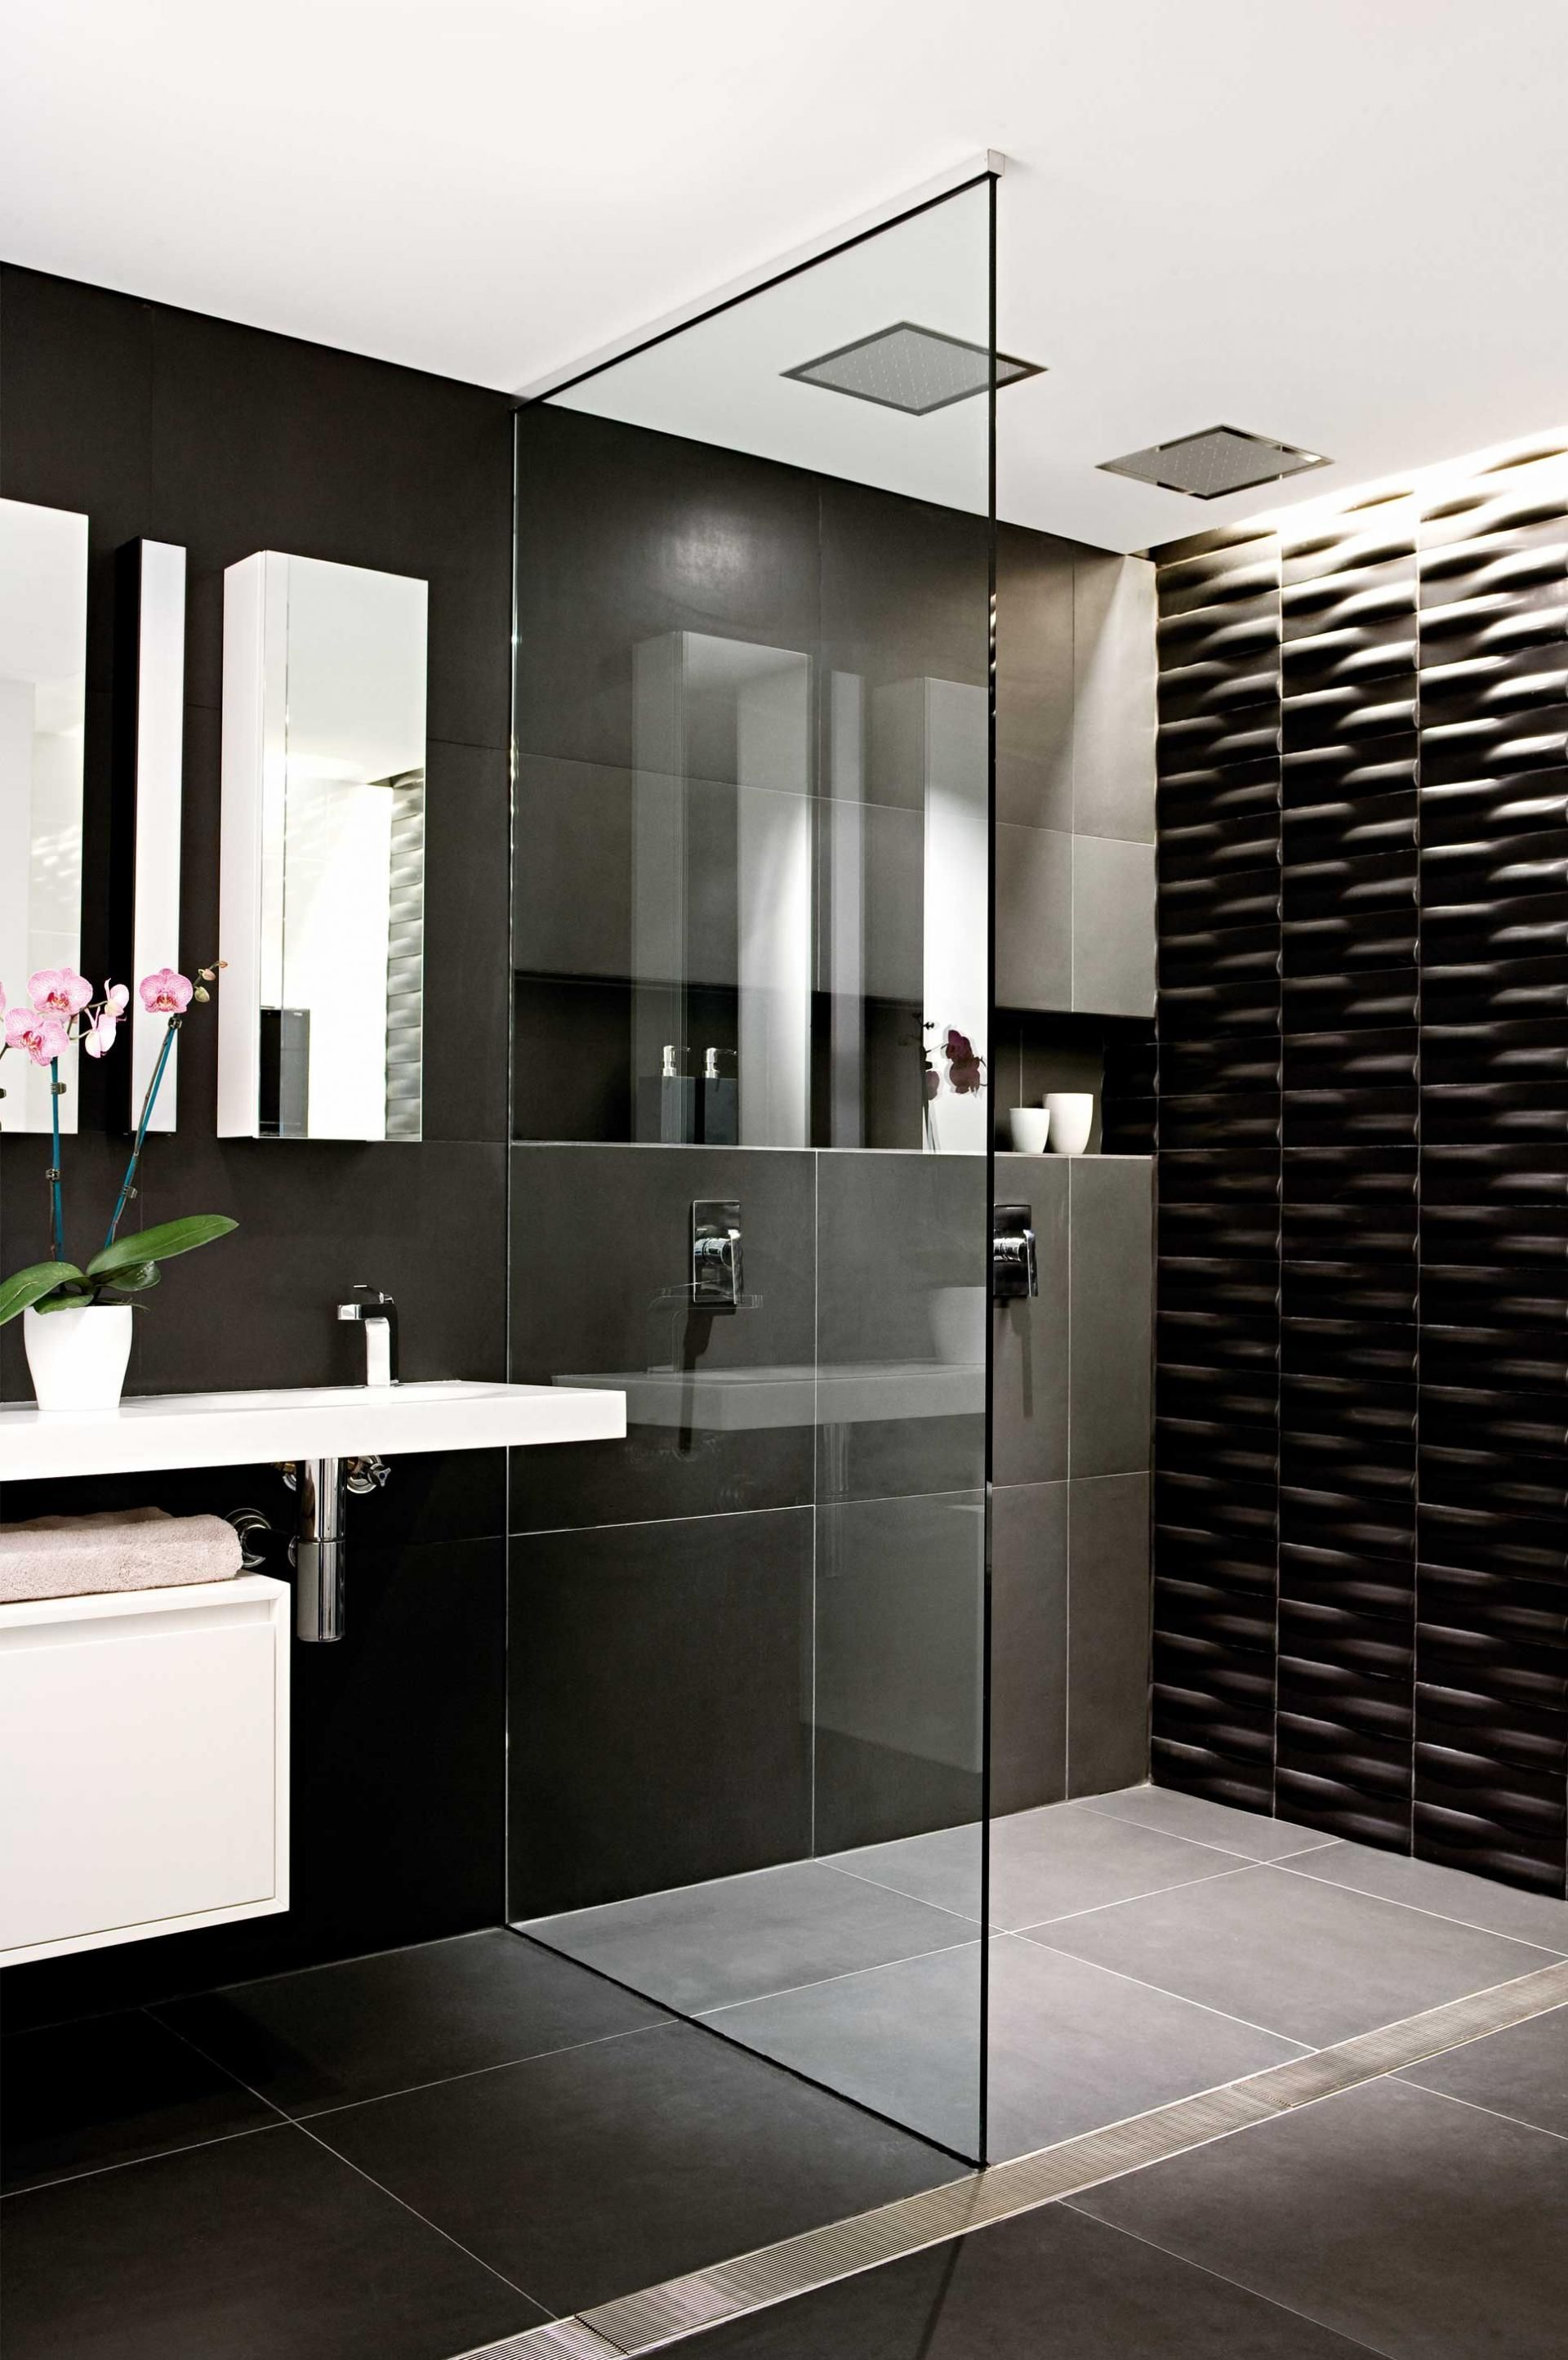 Popular 19 Black And White Bathroom Ideas 2020 In 2020 White Bathroom Decor Black Bathroom Gray Bathroom Decor